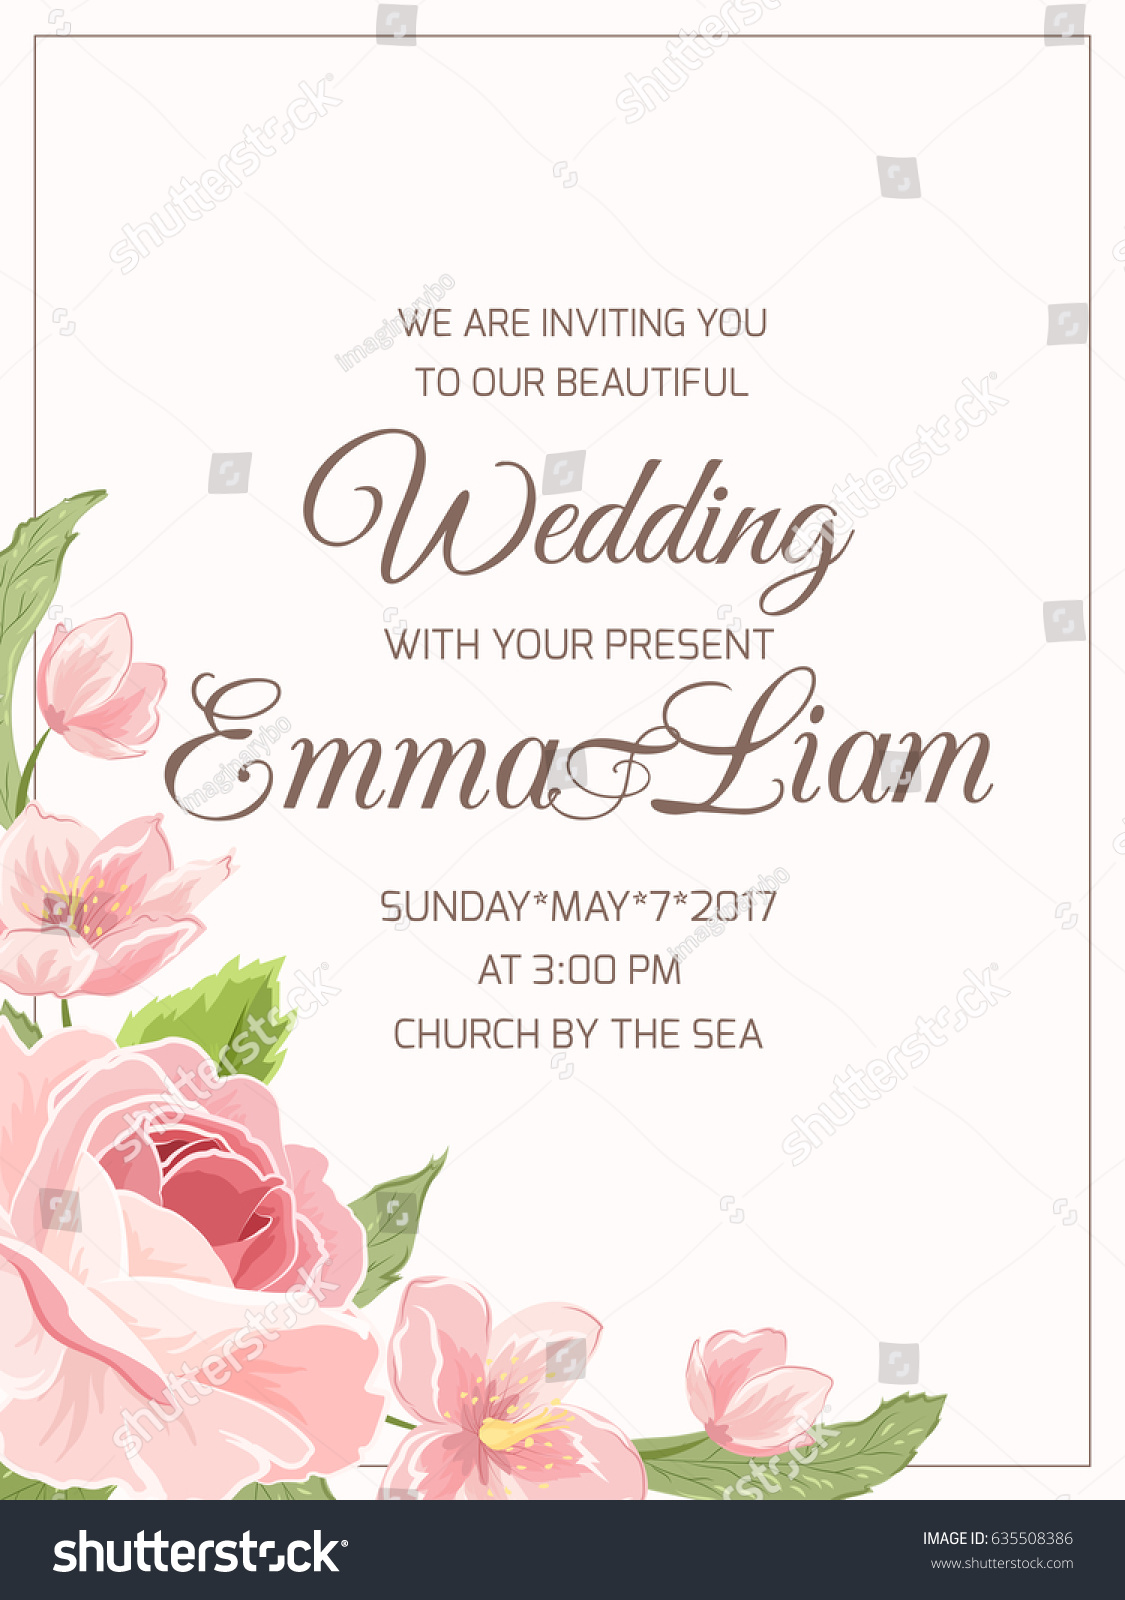 Wedding Marriage Invitation Card Template RSVP Stock Photo (Photo ...